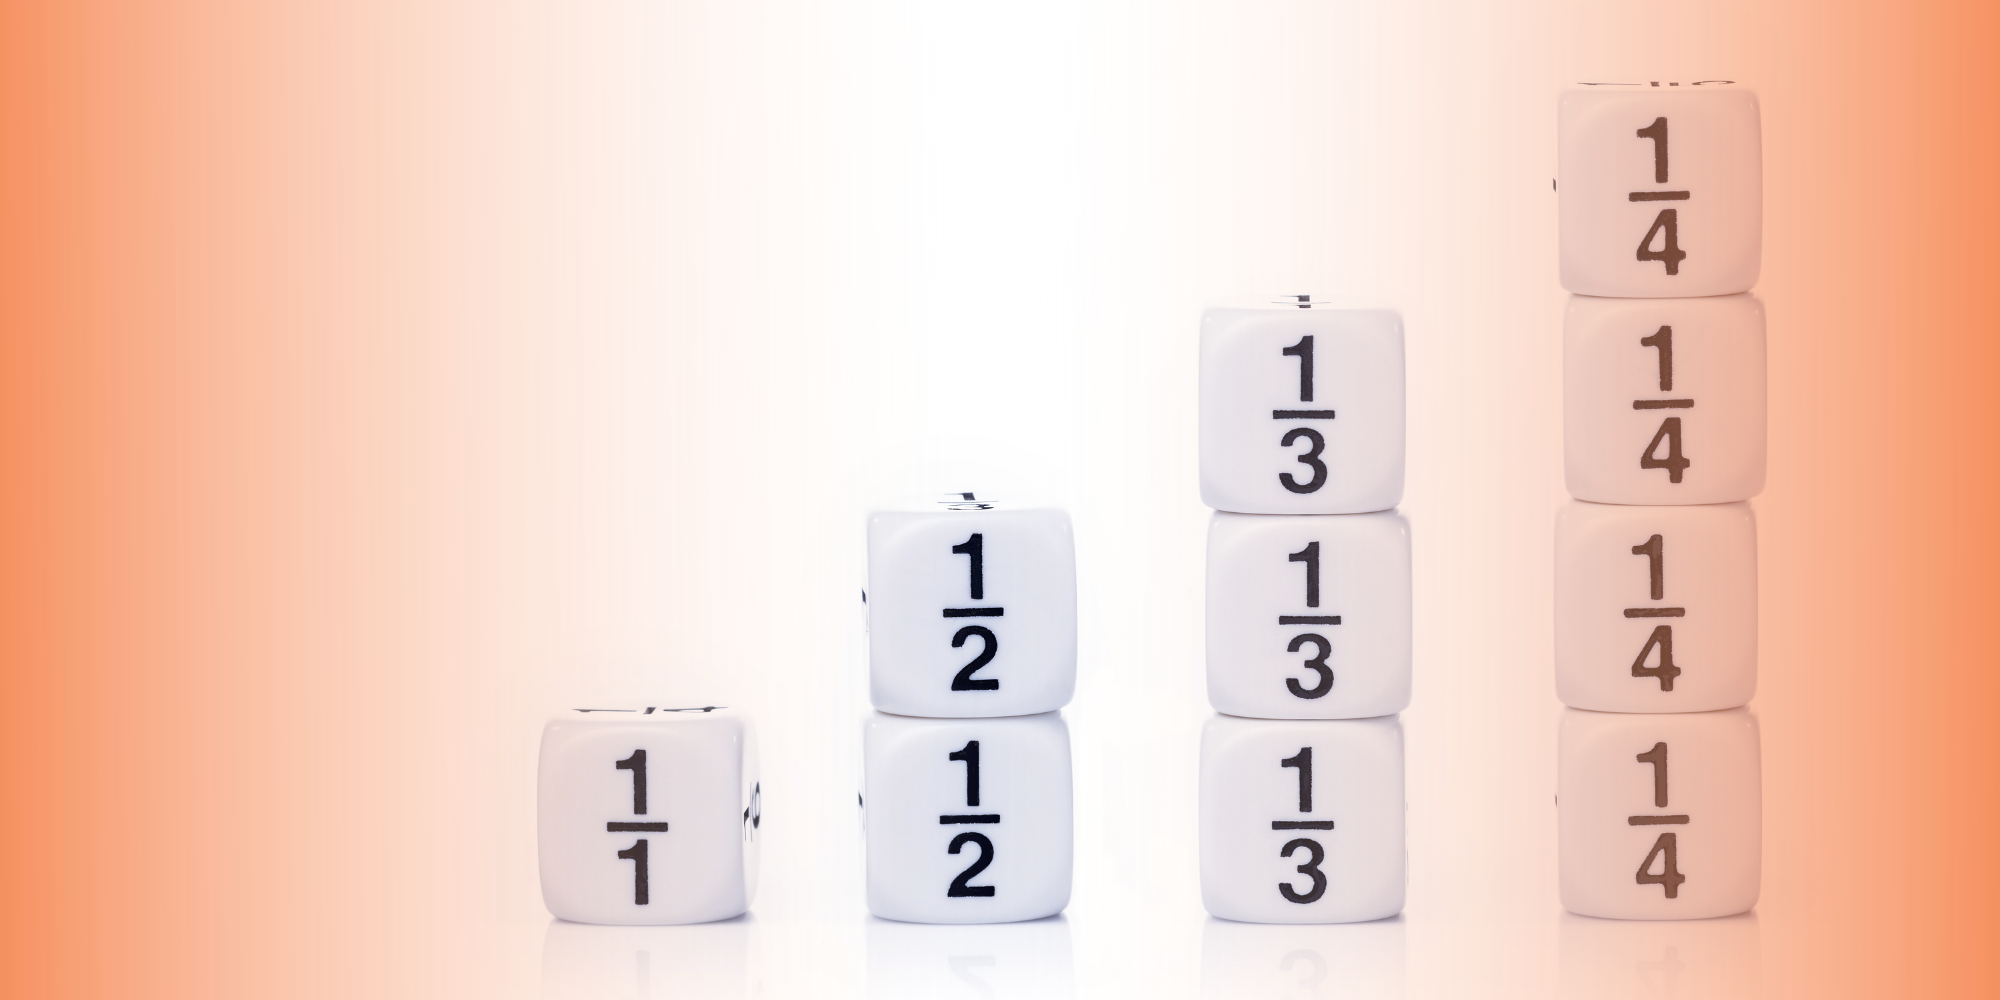 https://blog.leadschool.in/how-to-teach-fractions-3-ways-to-make-it-a-fun-learning-experience-marathi